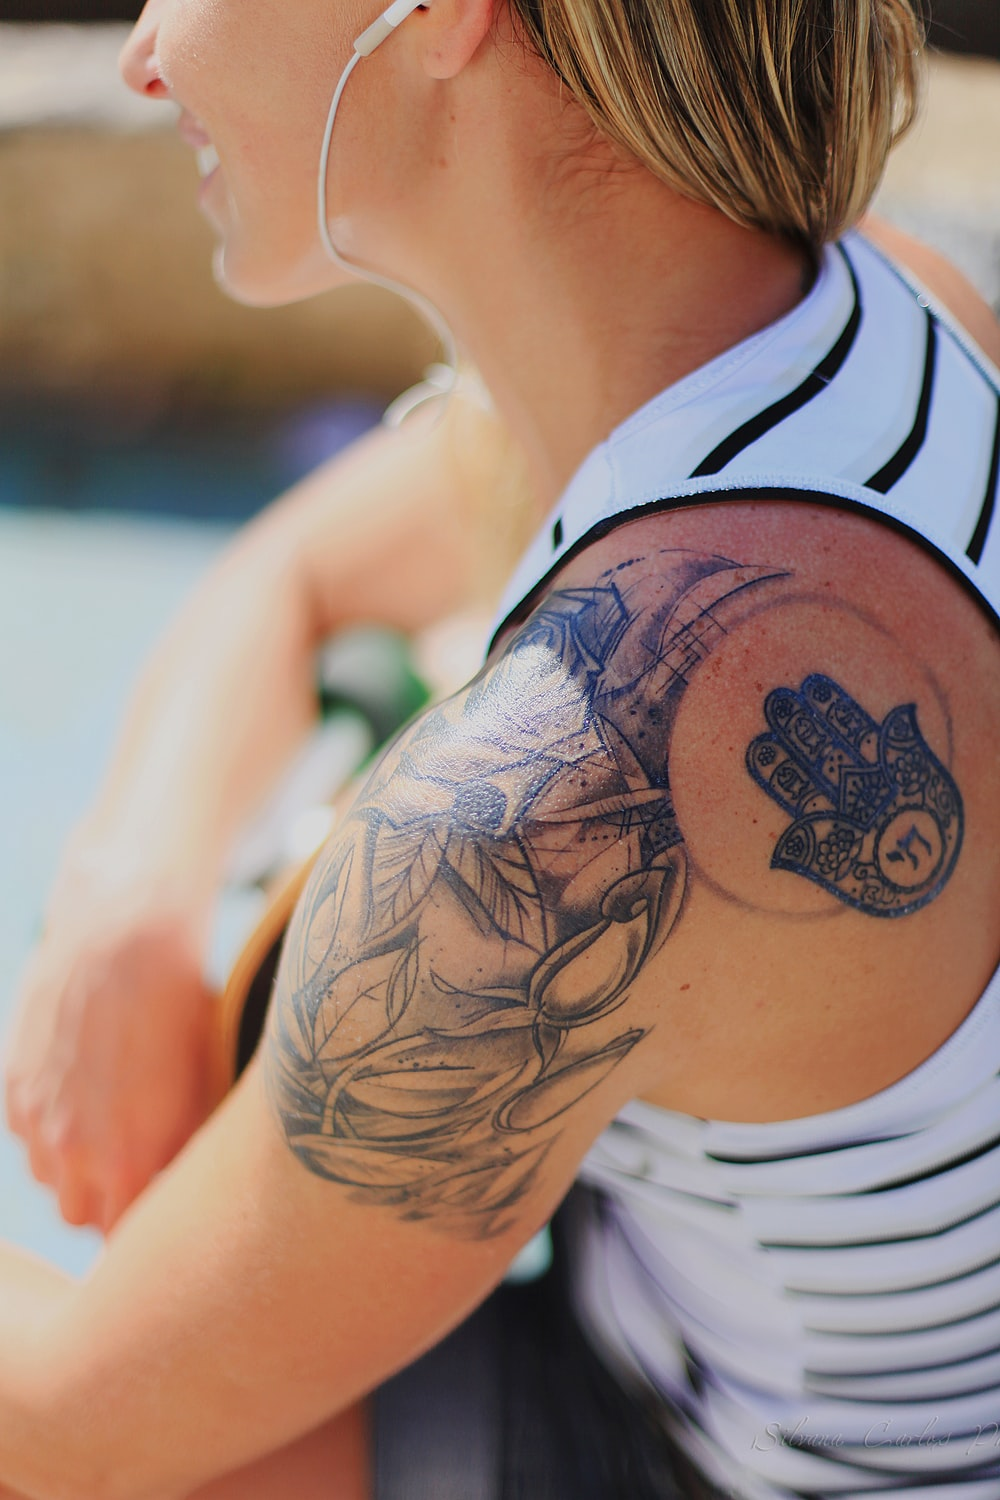 Tribal Tattoos For Women: What Are Tribal Tattoos For Women?